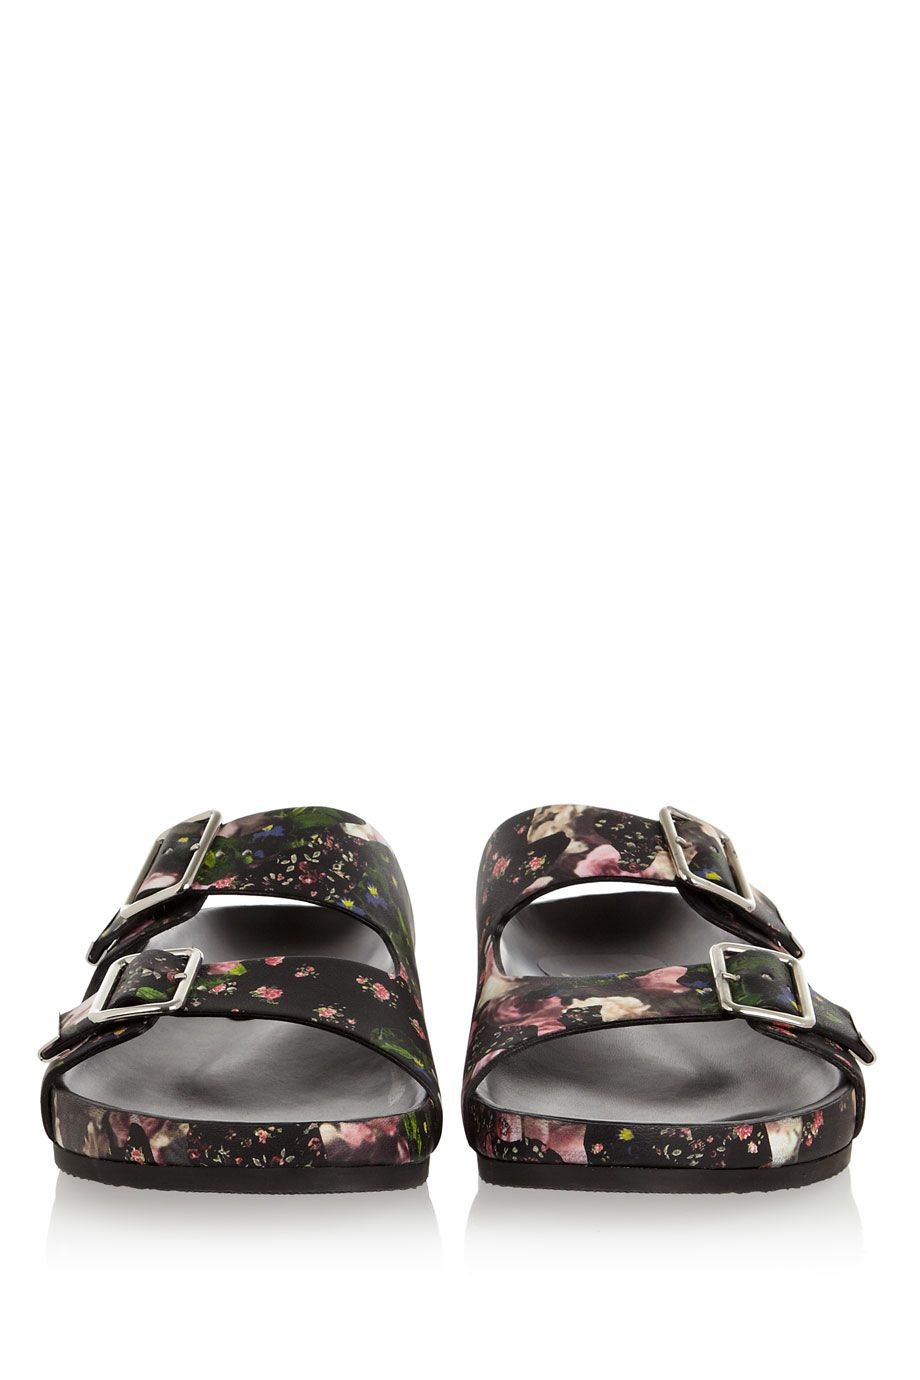 ☆Givenchy Floral-print nappa leather sandals